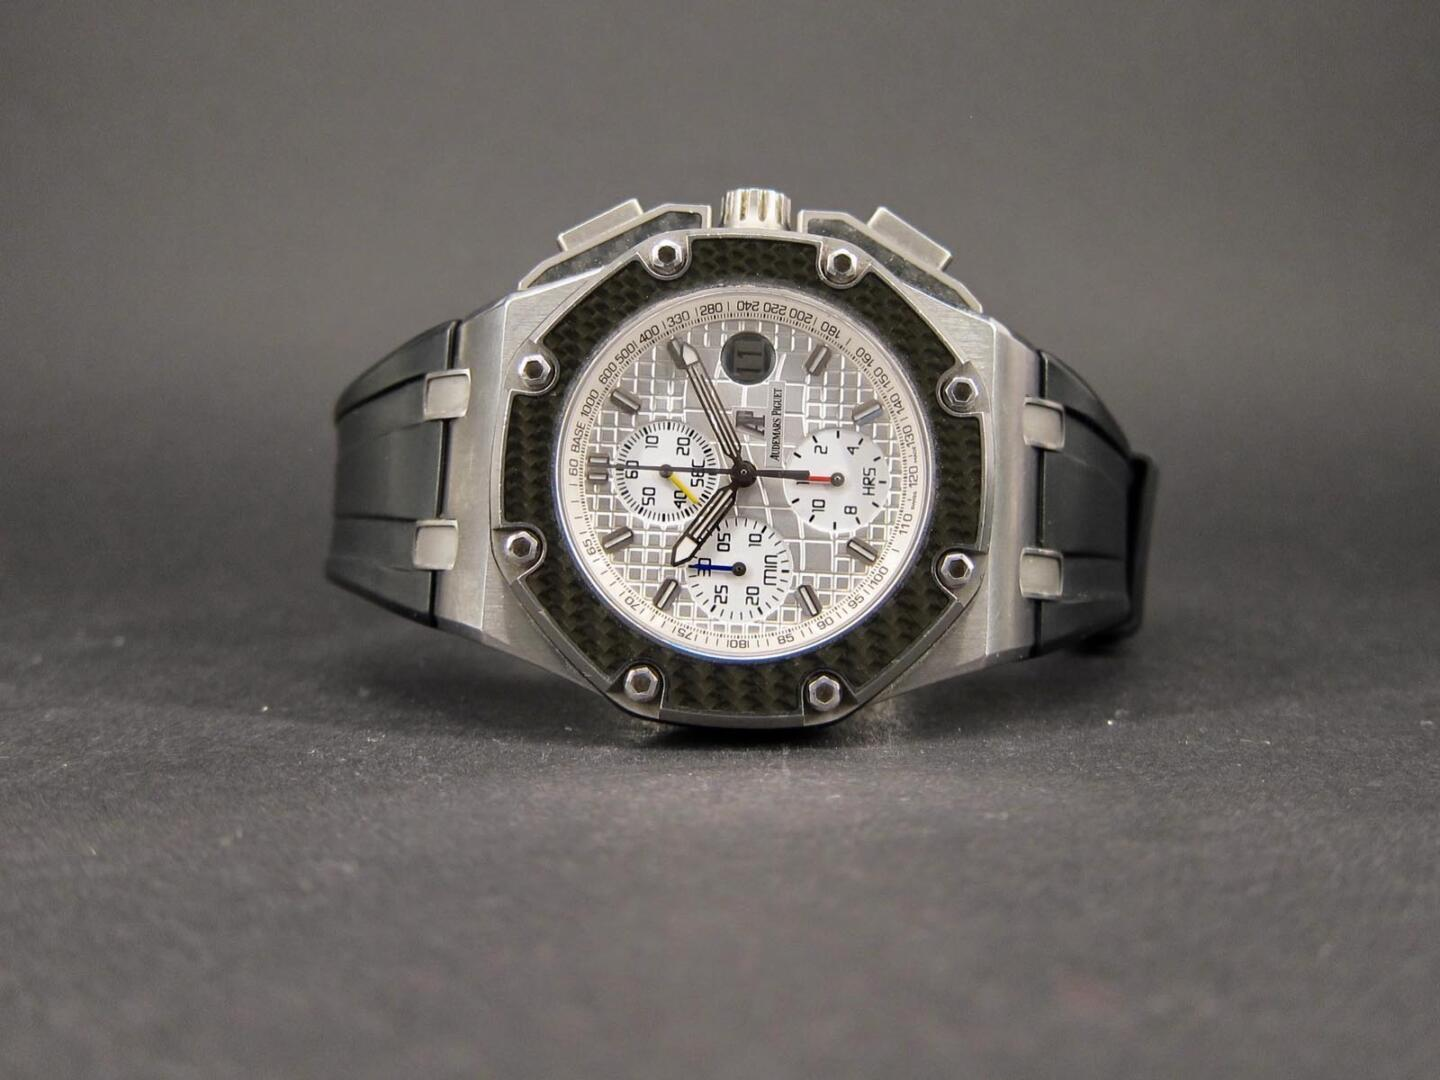 Audemars Piguet Royal Oak Offshore Montoya Limited Edition. Myyjä: Kellokonttori